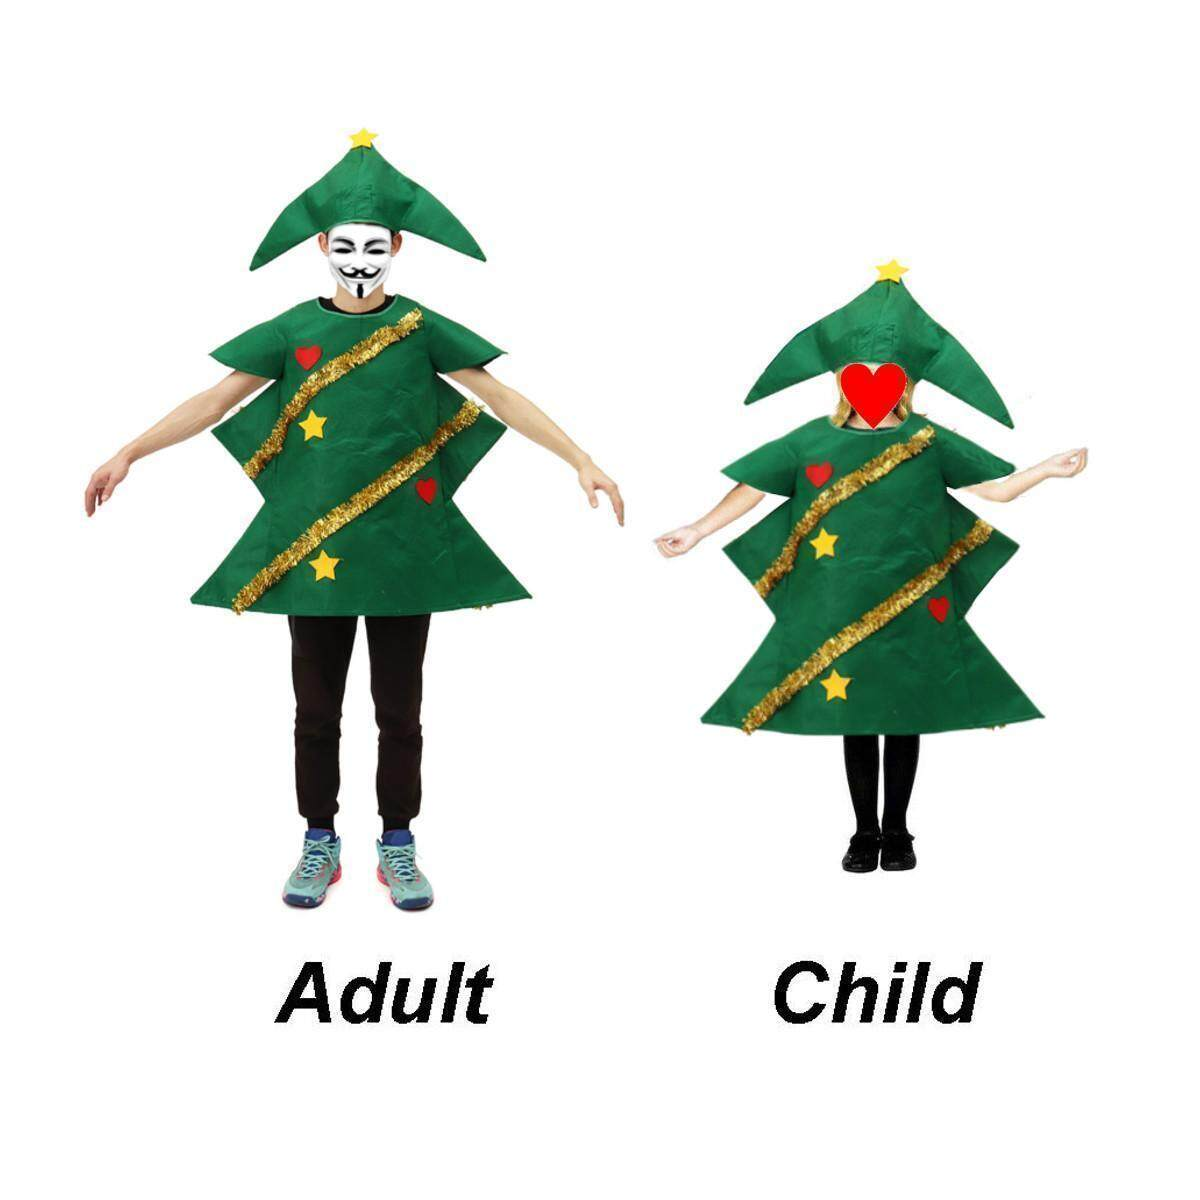 6dd220a23ac9 Product details of Adult Christmas Tree Costume Ladies Novelty Xmas Tree  Fancy Dress Outfit New#Adult